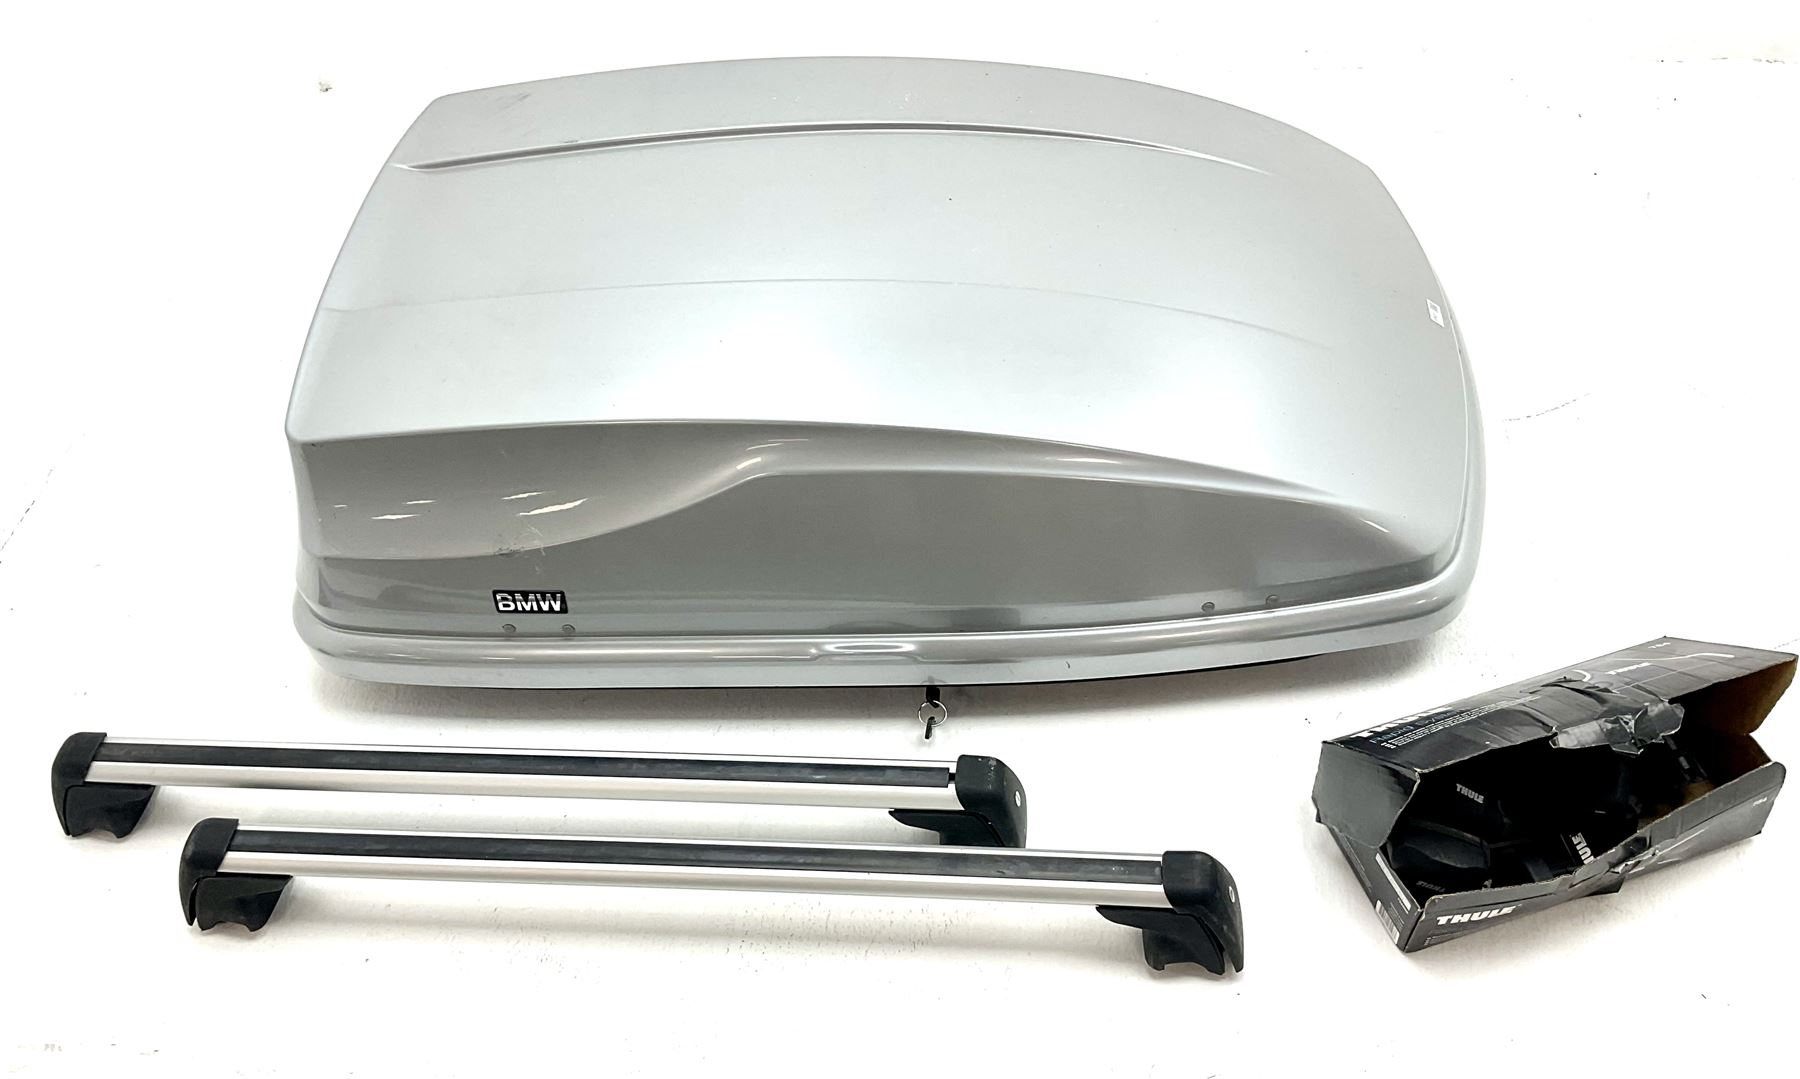 BMW vehicle roof storage box with Thule Rapid System 754 roof rack and two bars - Image 2 of 3